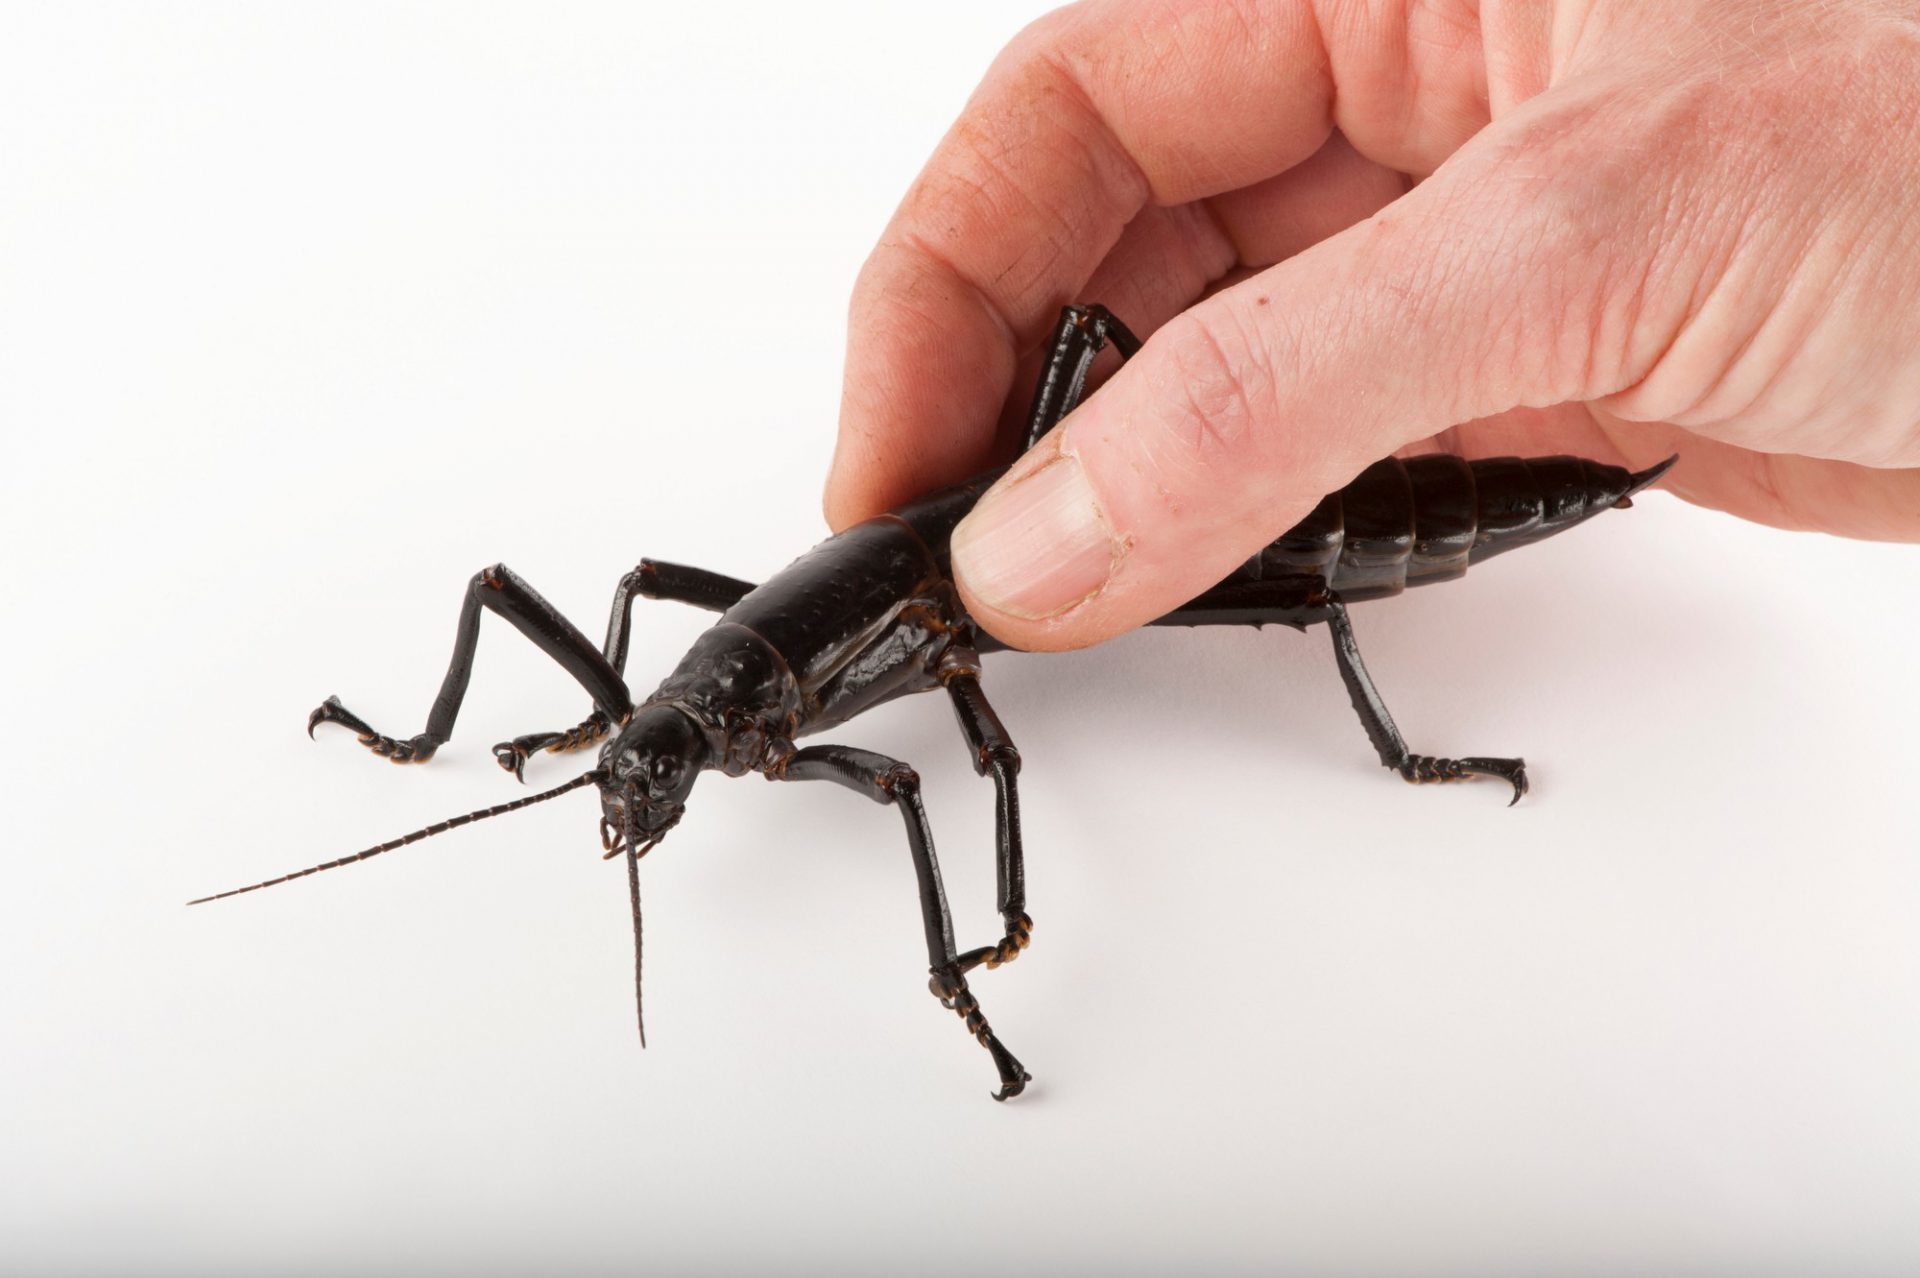 Photo: A critically endangered Lord Howe Island stick insect (Dryococelus australis) at the Melbourne Zoo.